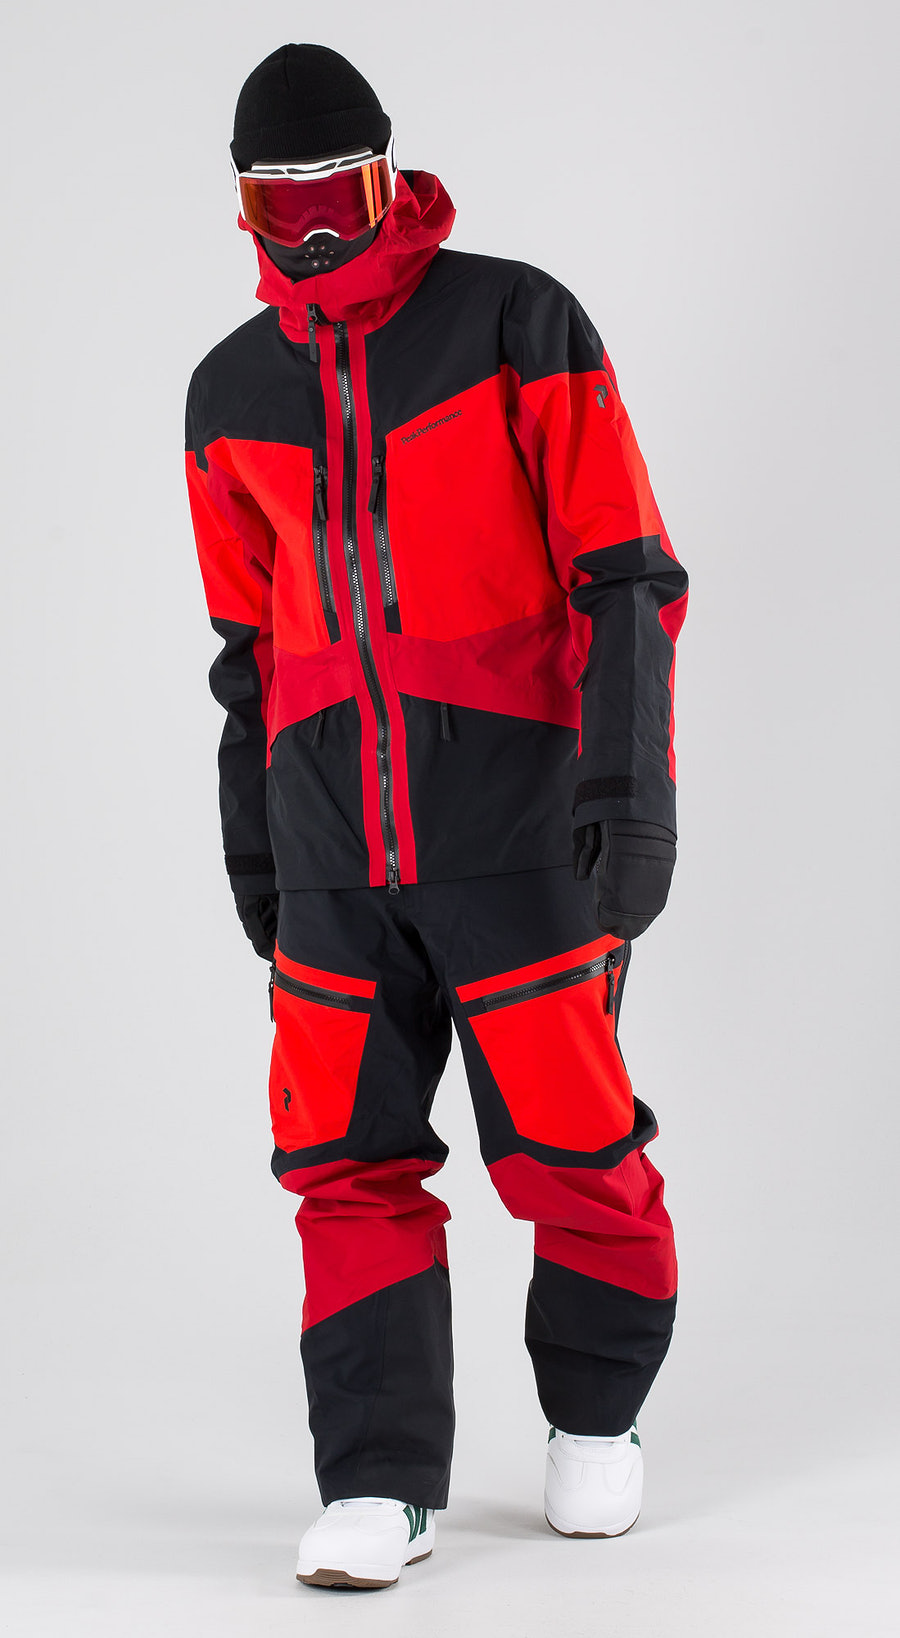 Peak Performance Gravity Dynared Snowboardkläder Multi